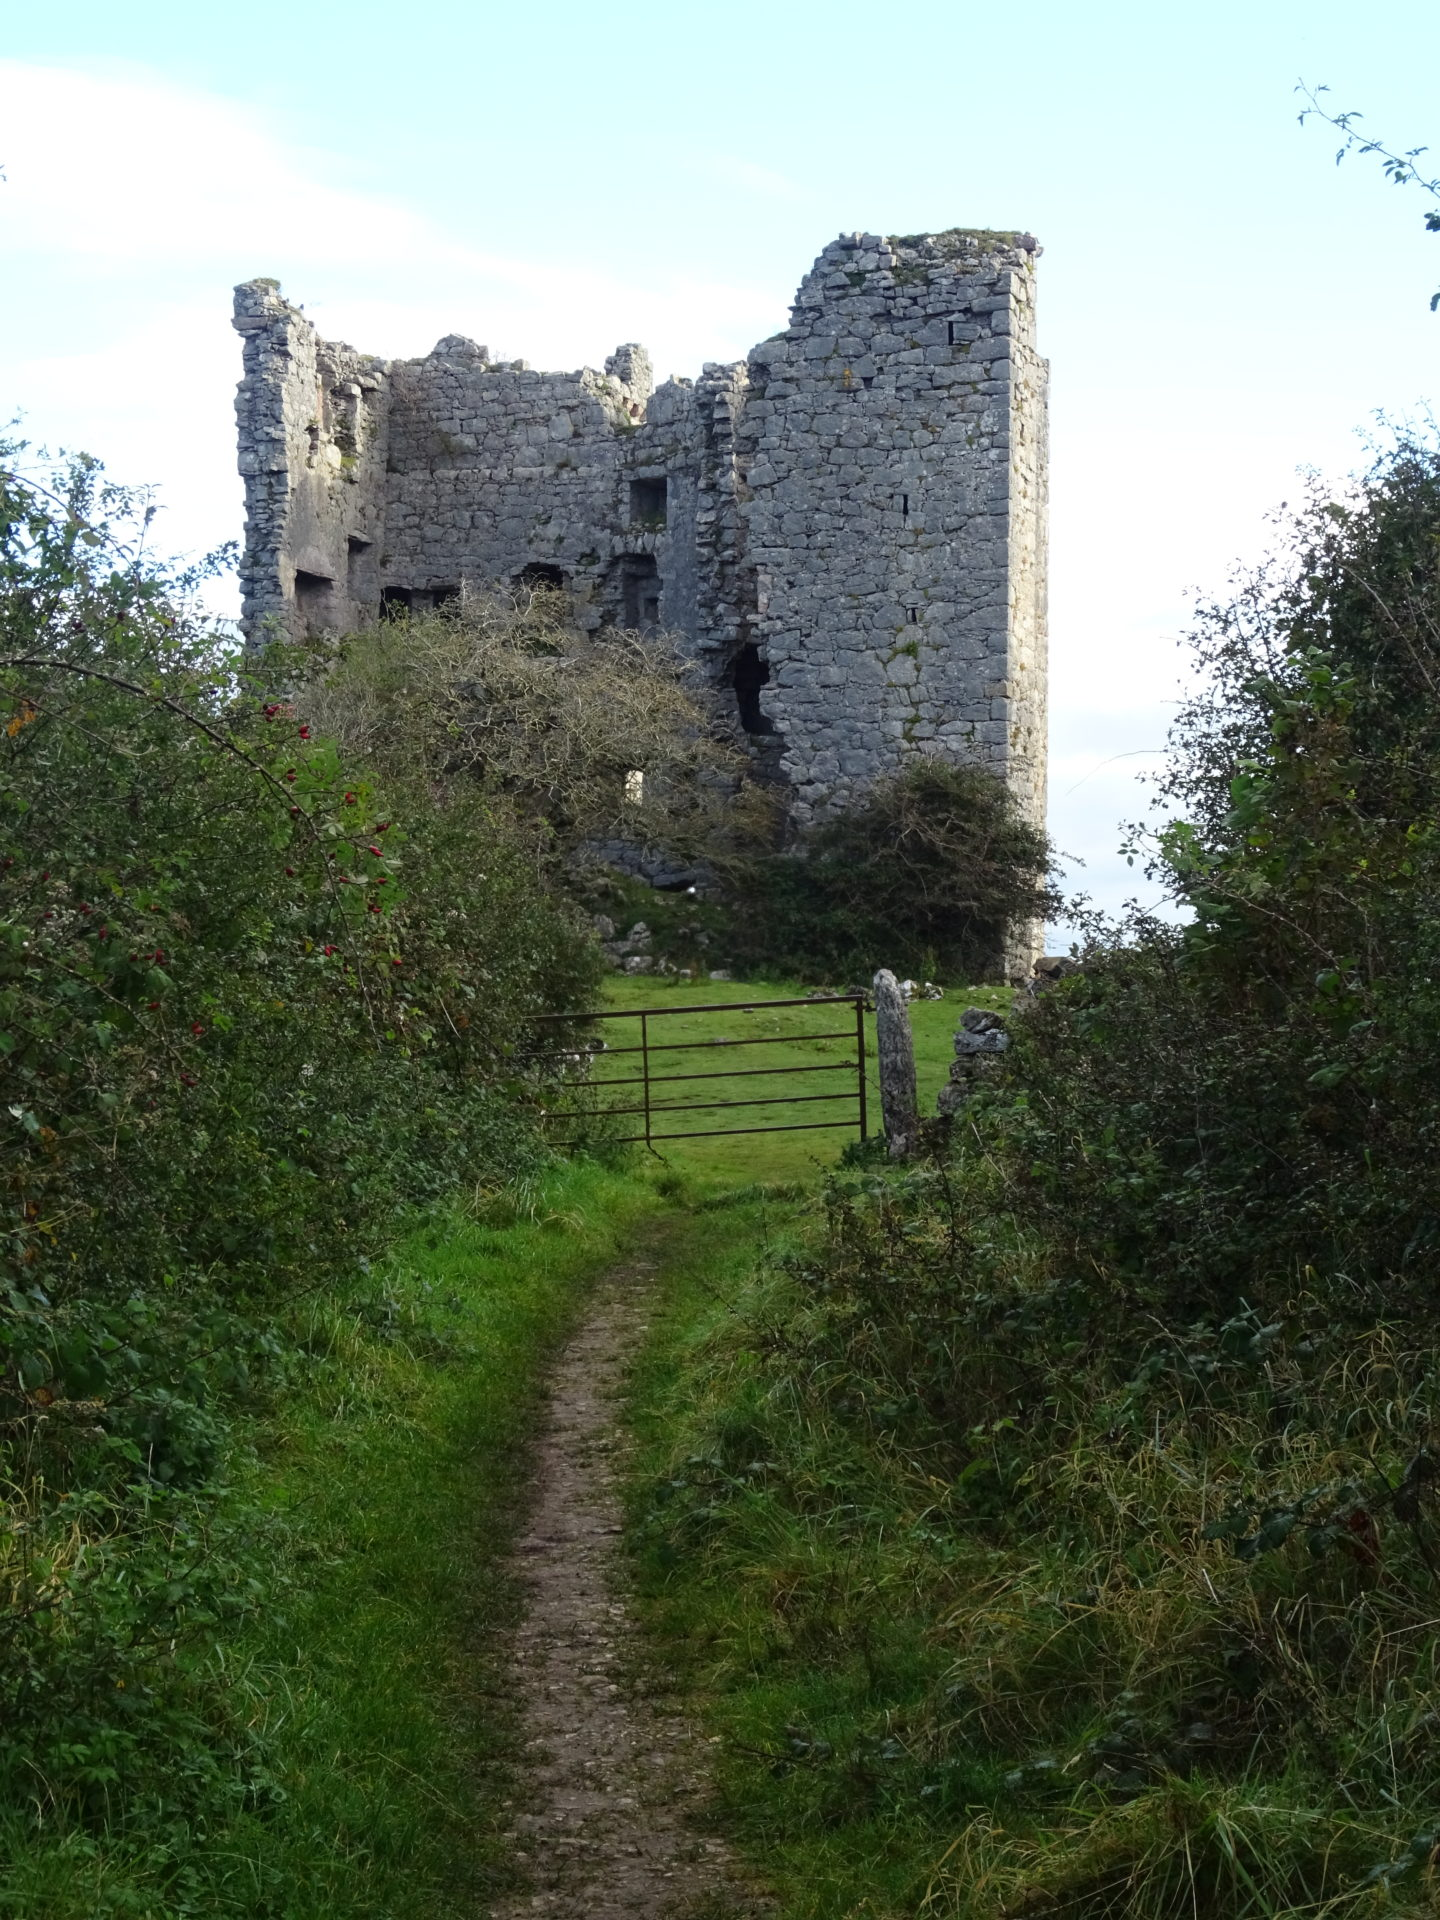 Arnside's Old Walls – 15c Pele Tower